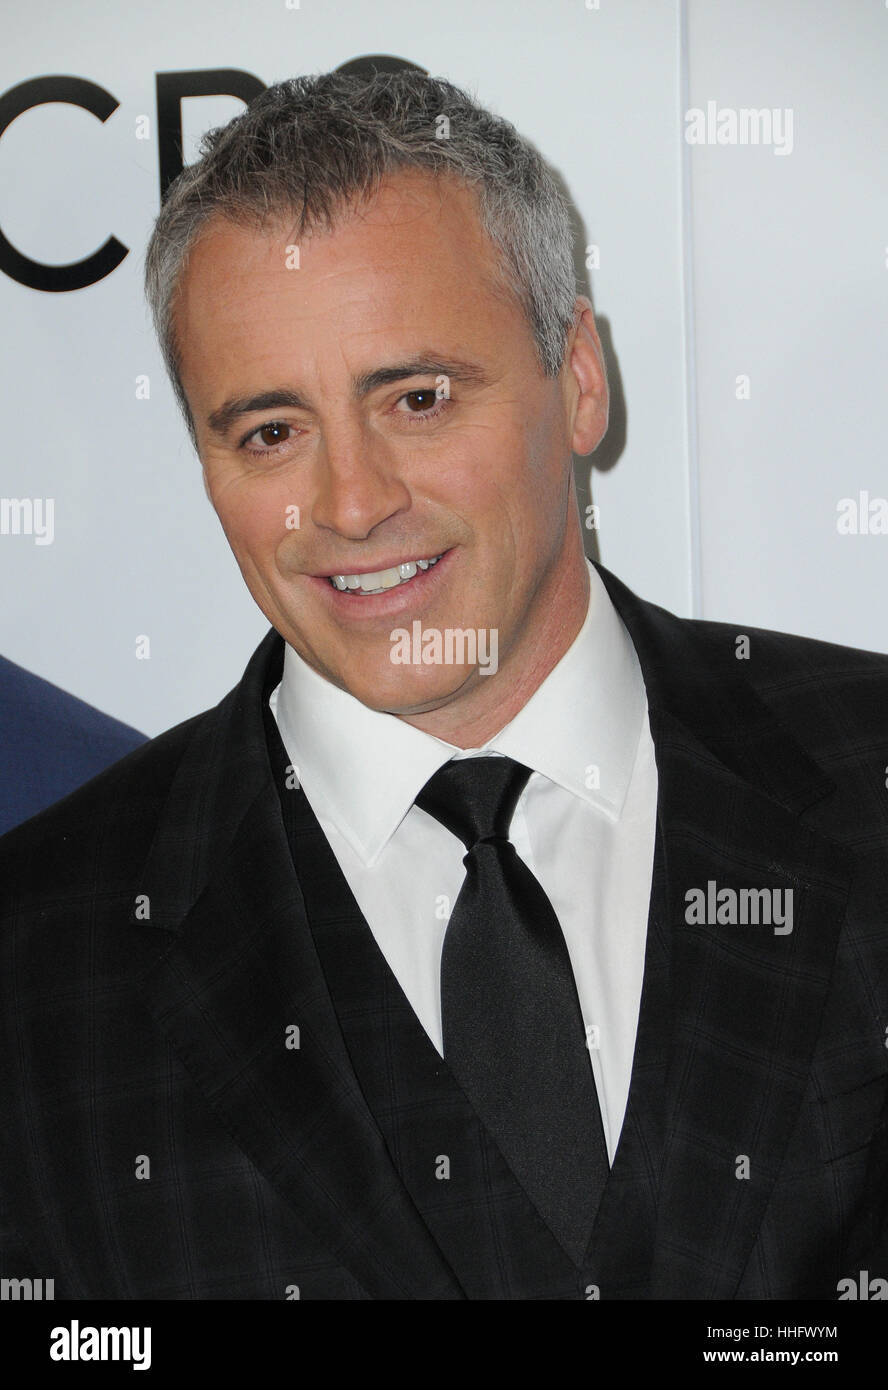 Los Angeles, CA, EE.UU. 18 ene, 2017. El 18 de enero de 2017 - Los Angeles, California - Matt LeBlanc. 2017 People's Imagen De Stock